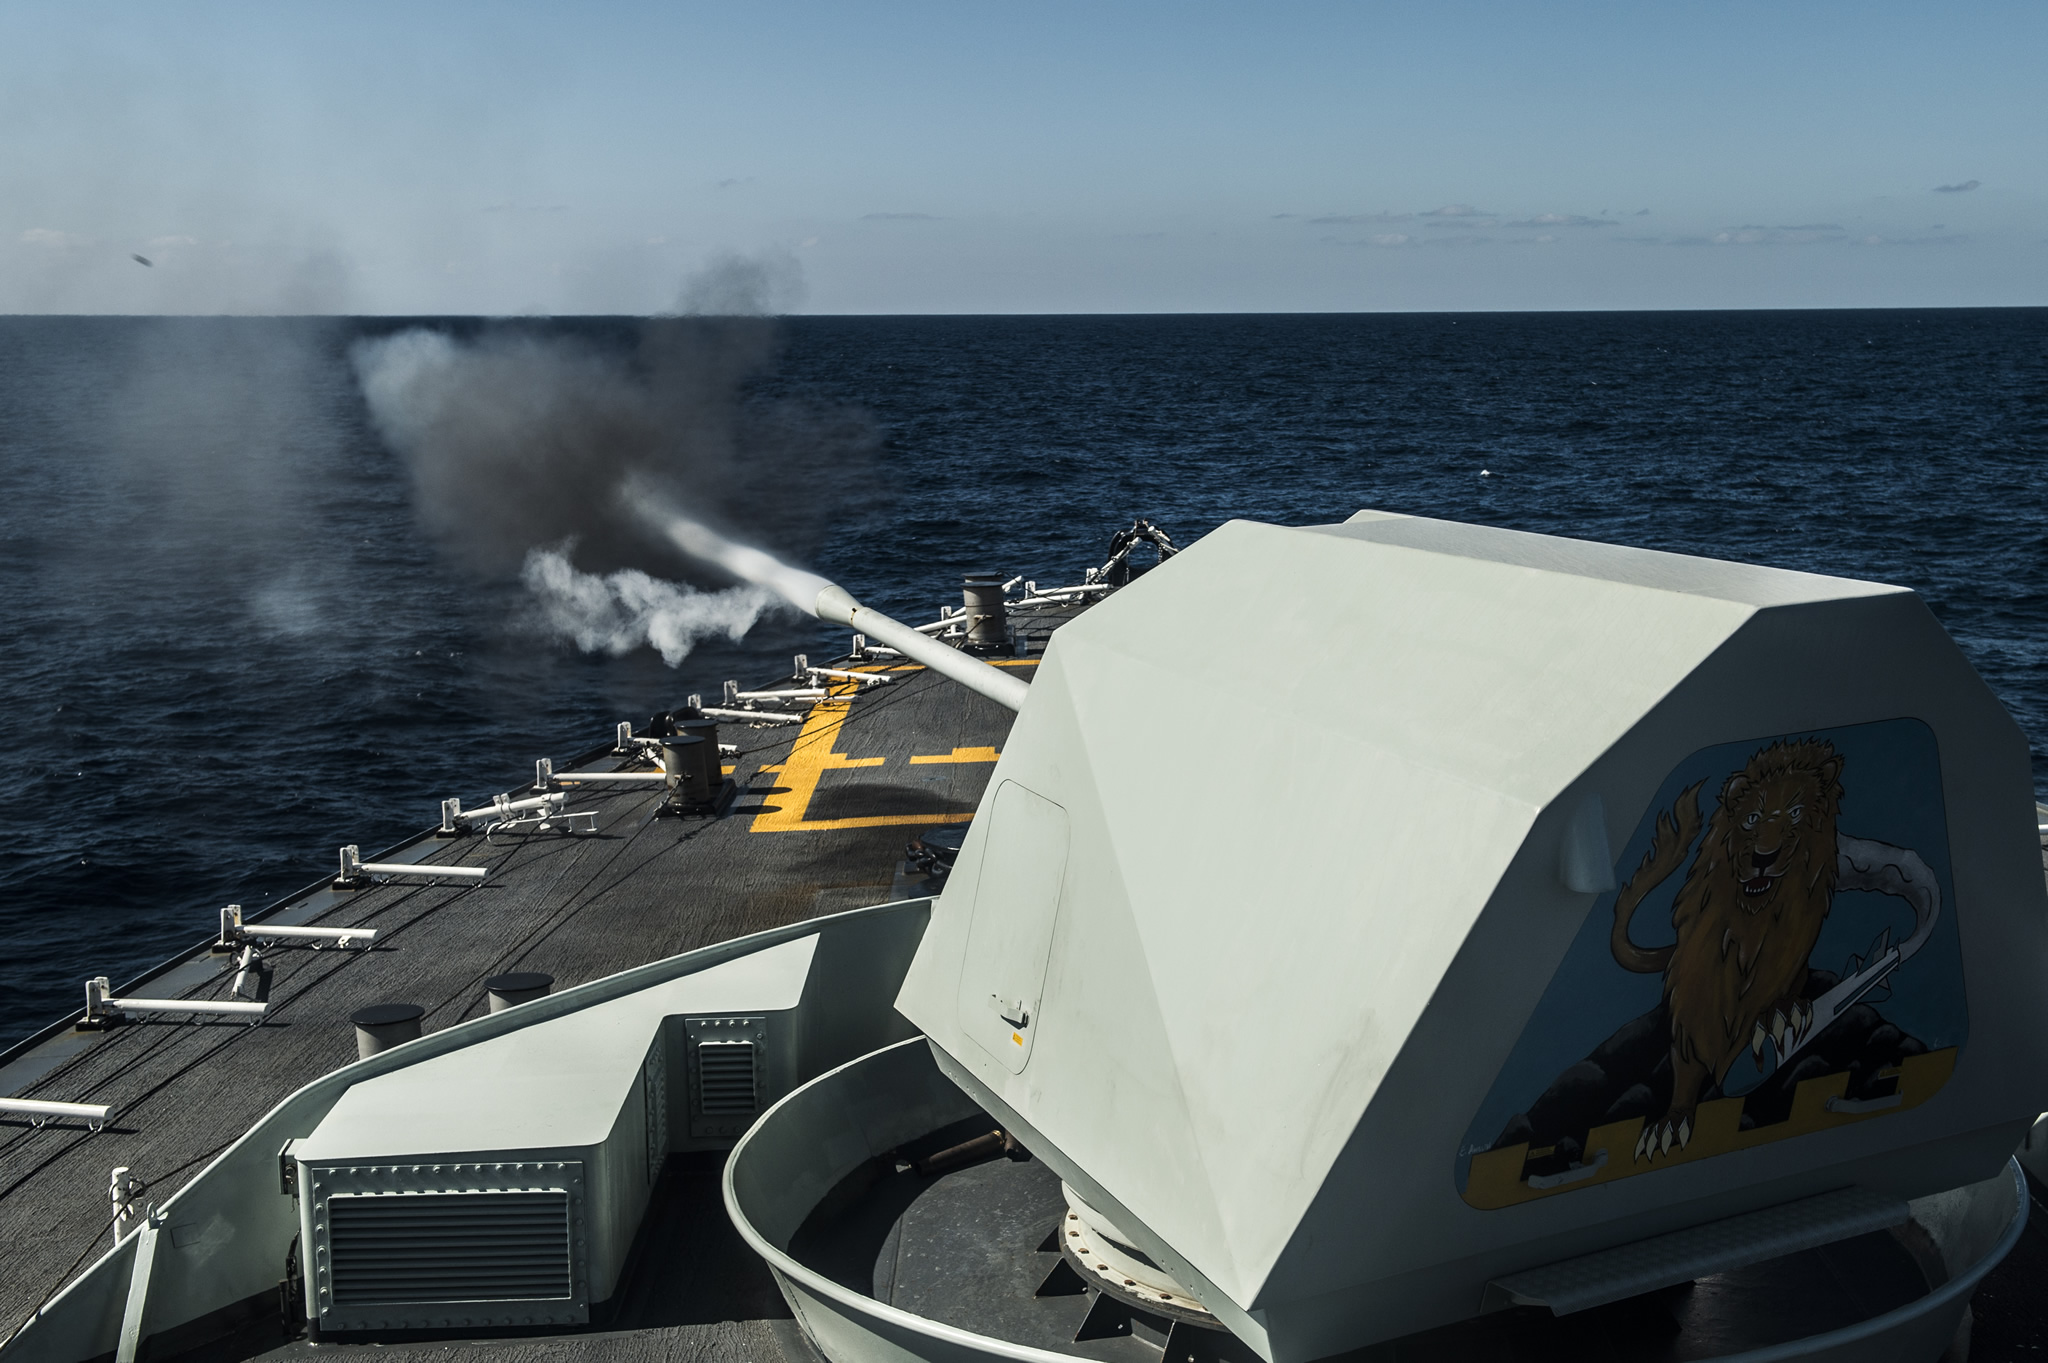 A large gun fires at a target from a ship